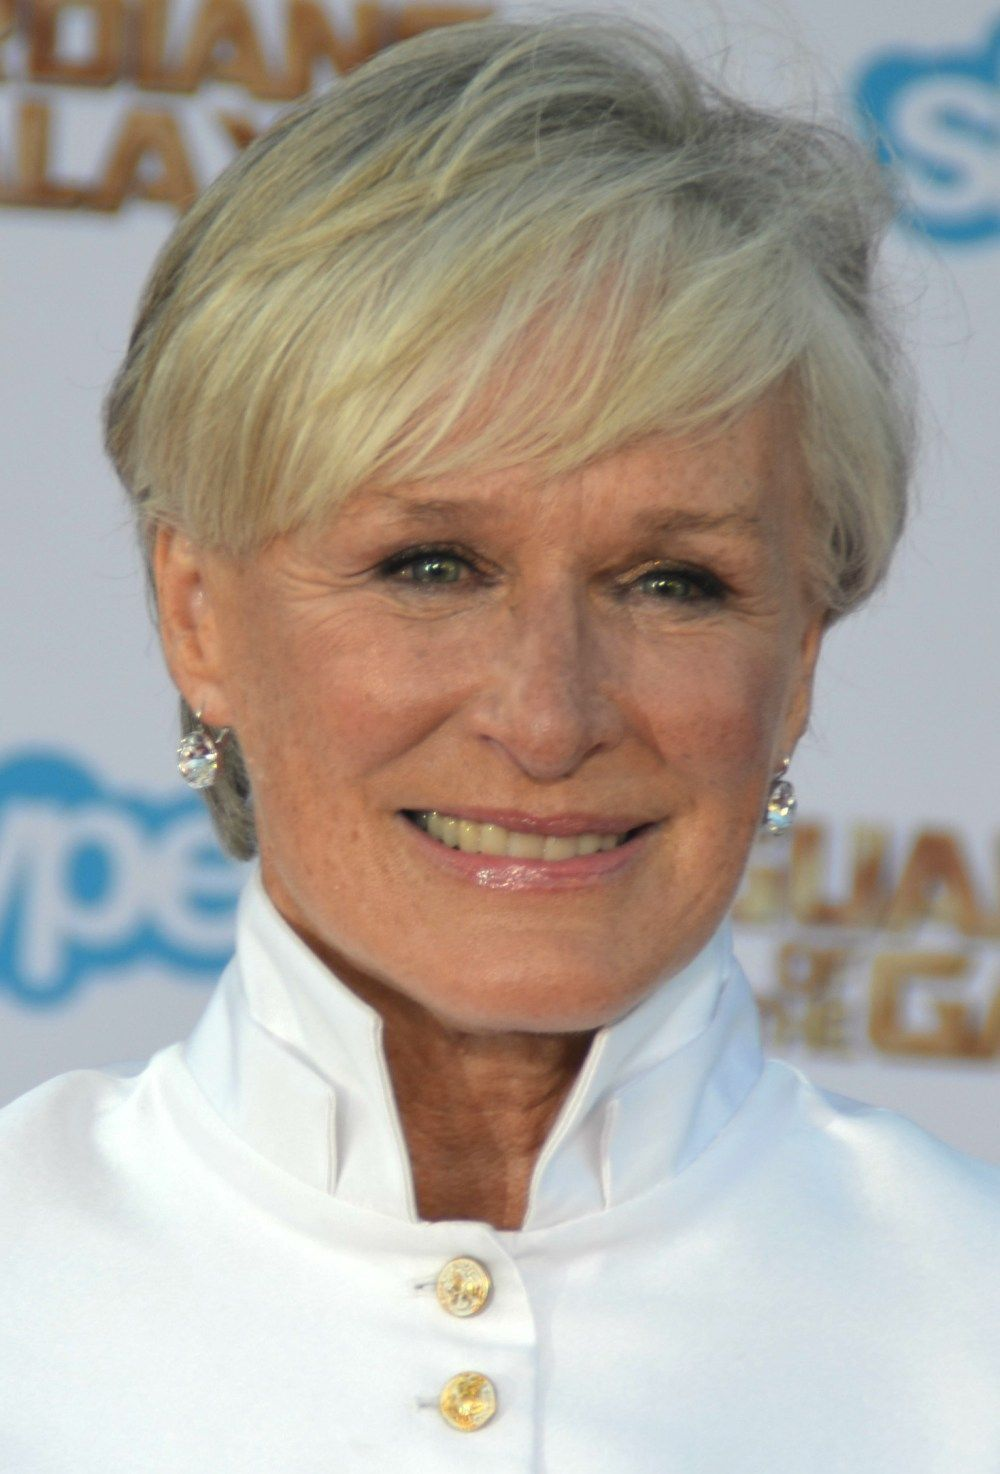 Glenn close short hairstyle nice look easy and manageable